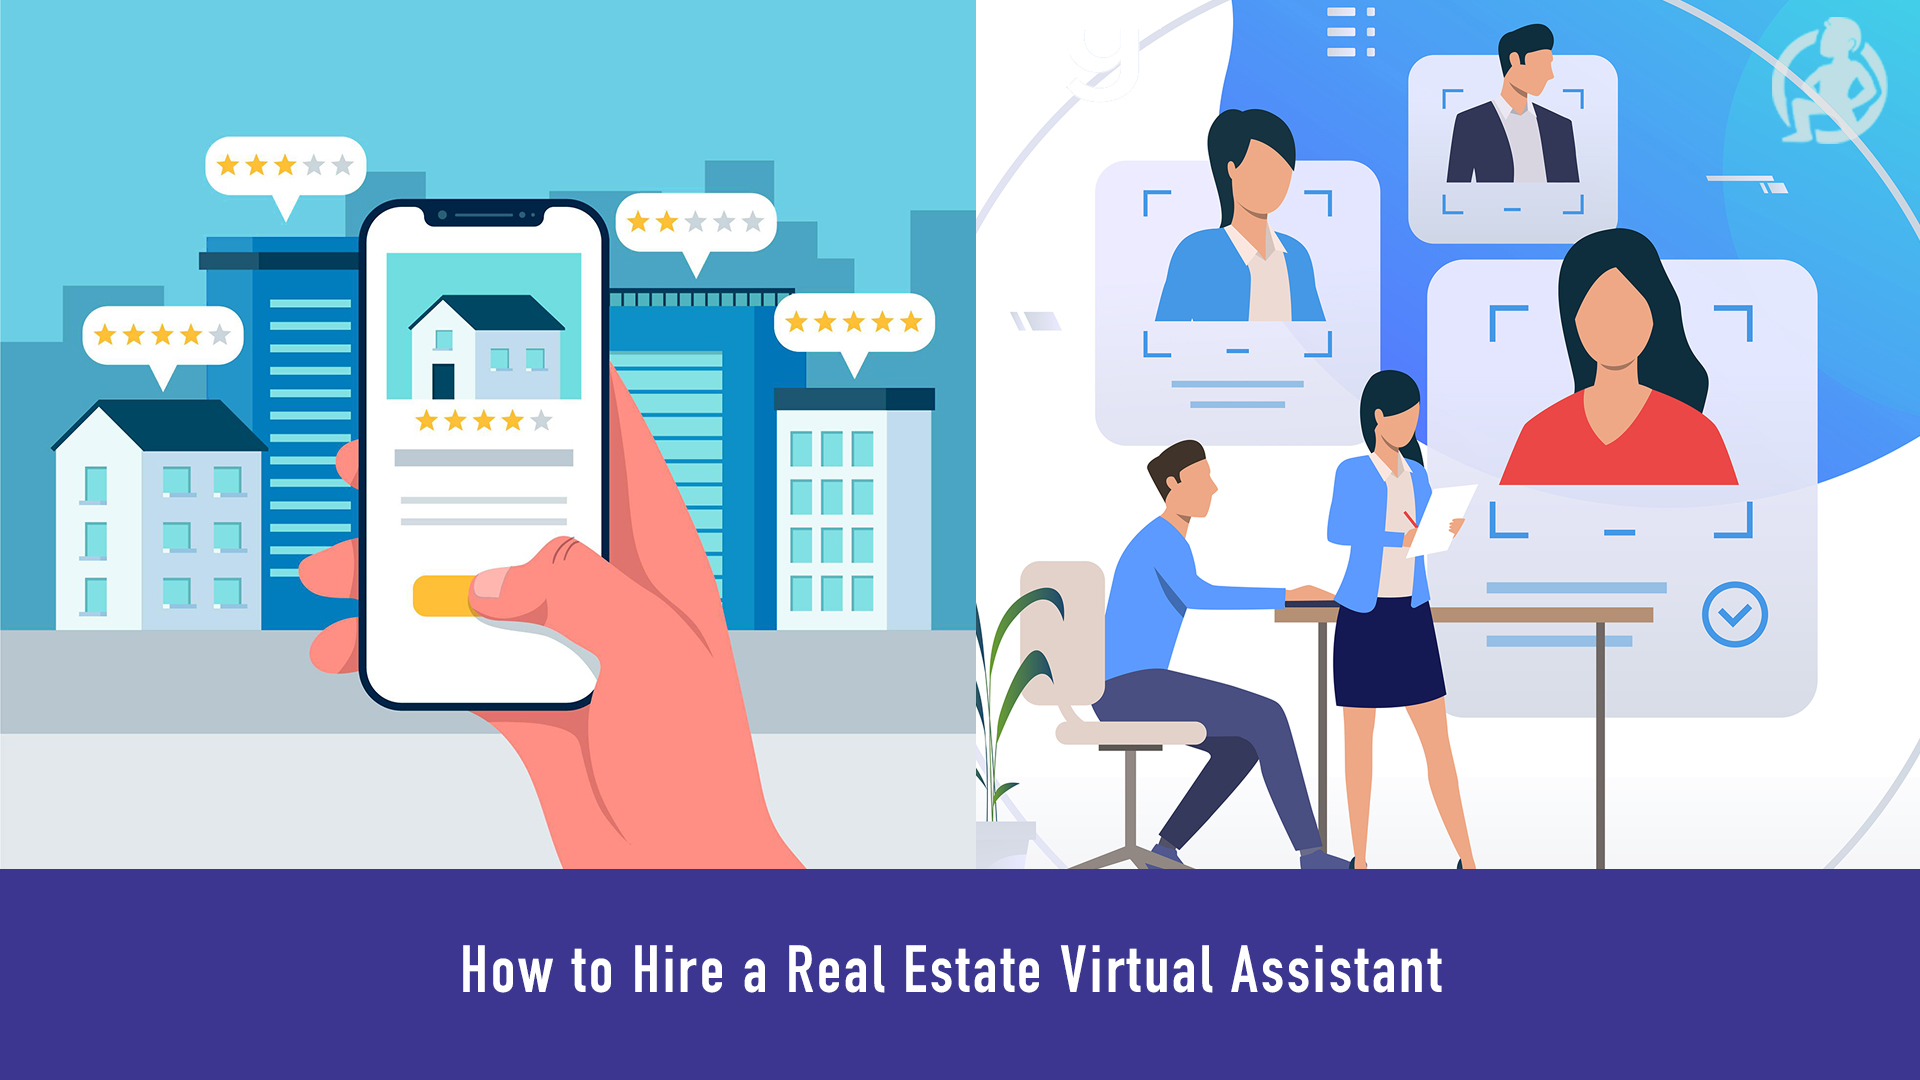 How to Hire a Real Estate Virtual Assistant